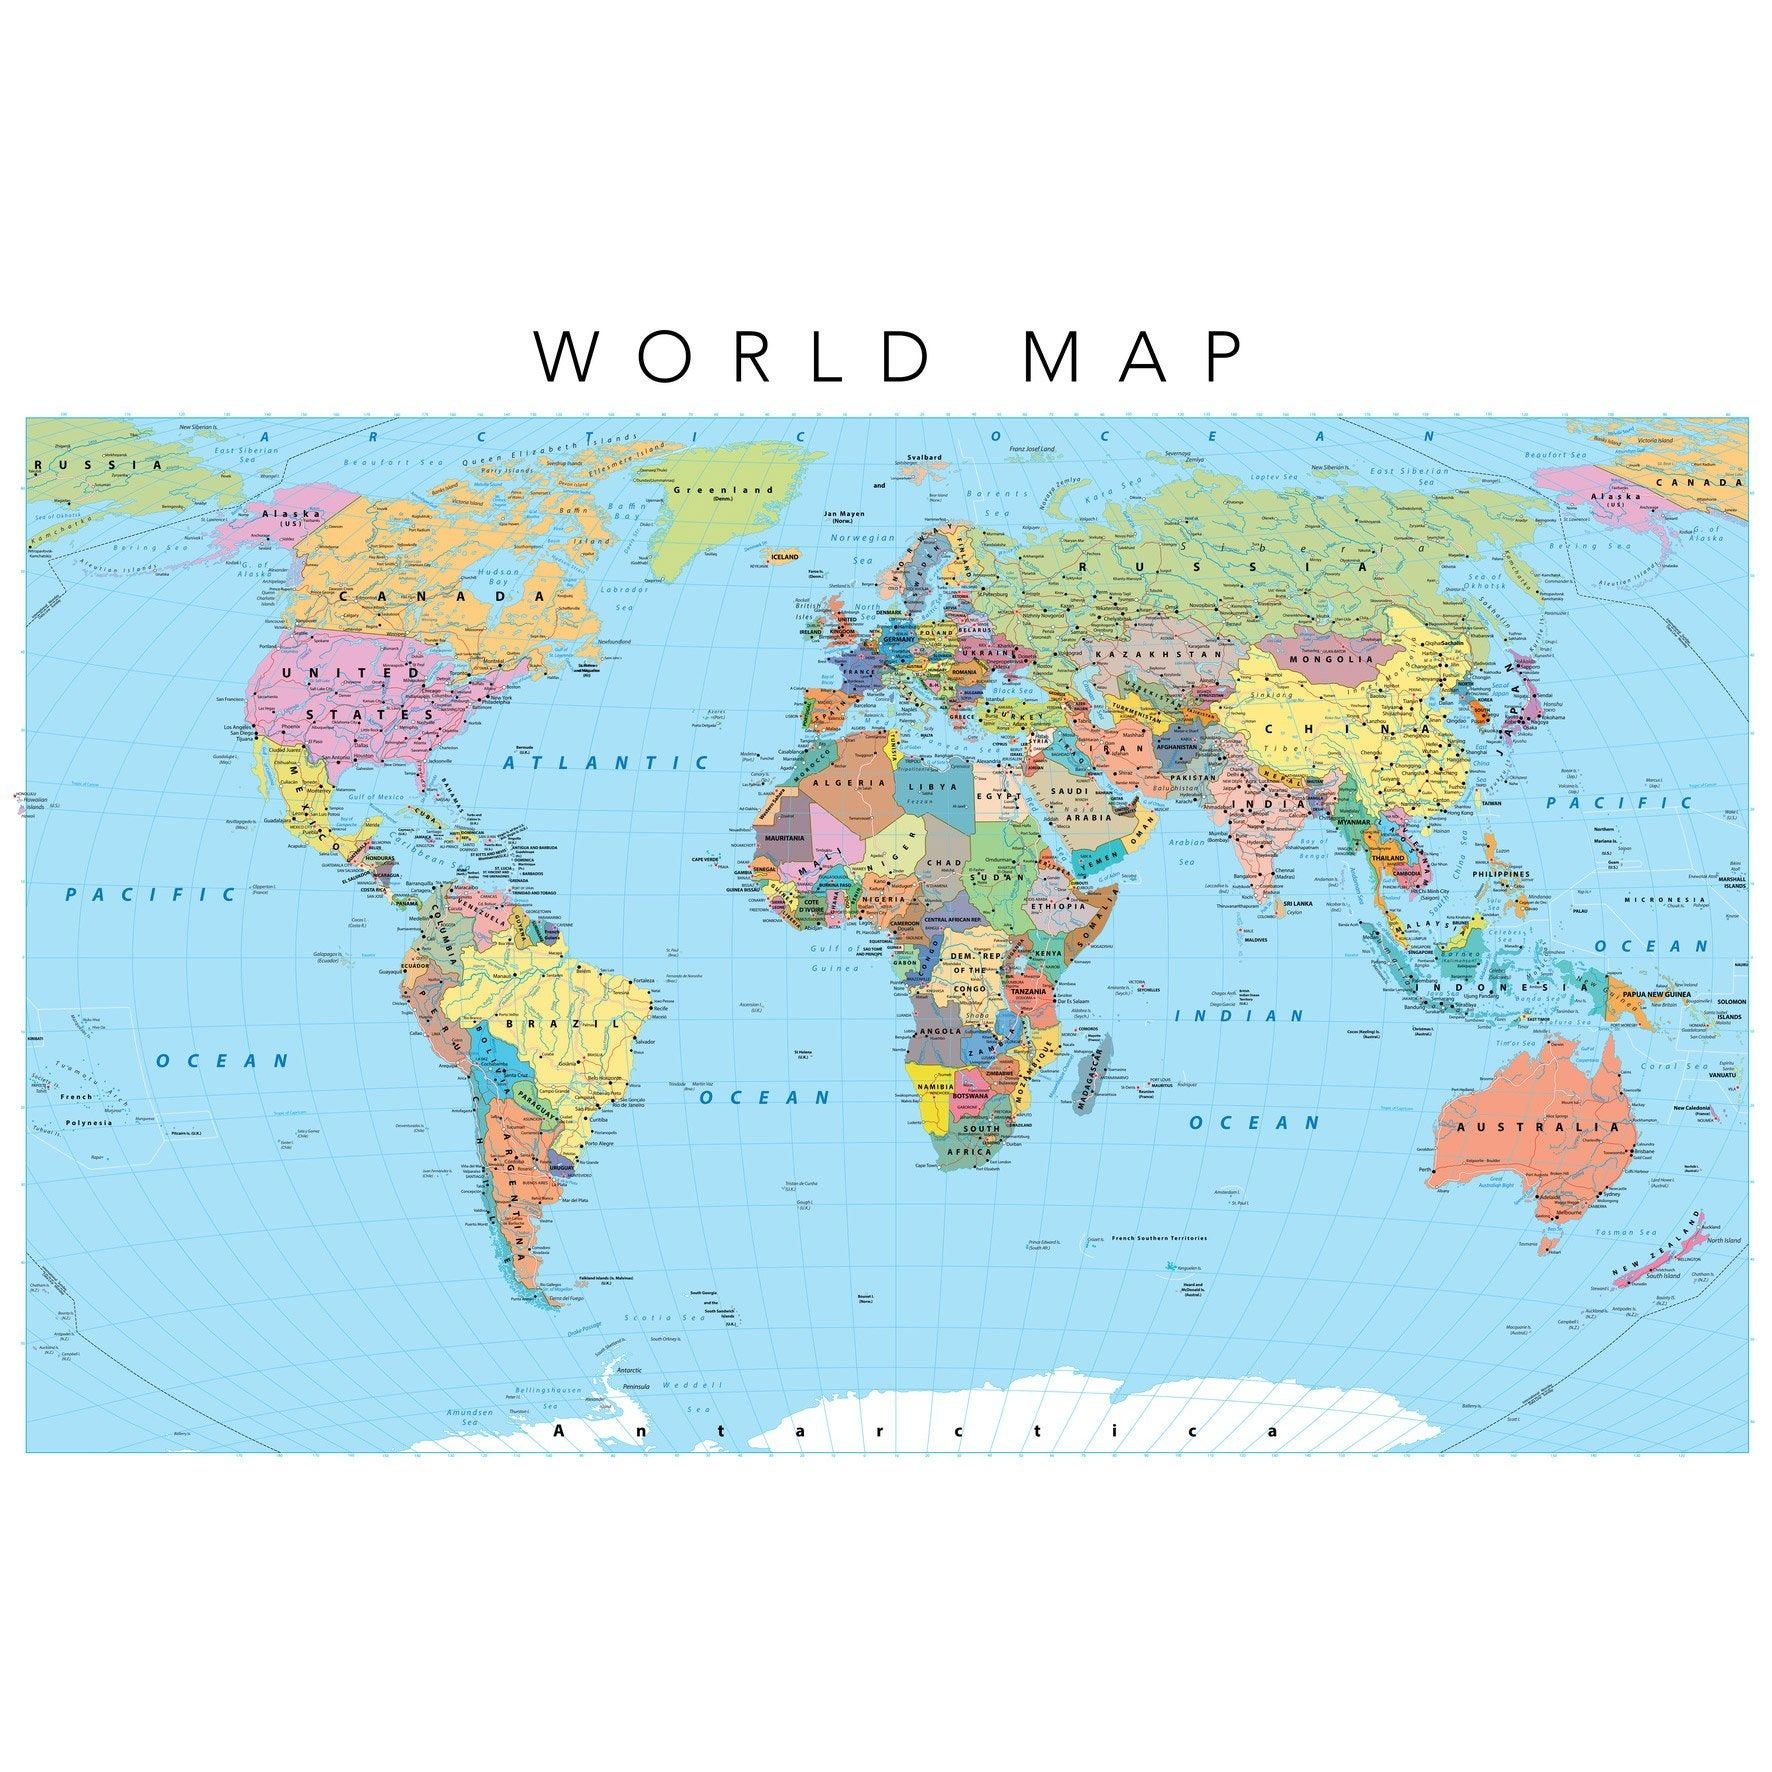 Toile Imprimee World Map 9 Multicolore Artis L 45 X H 30 Cm